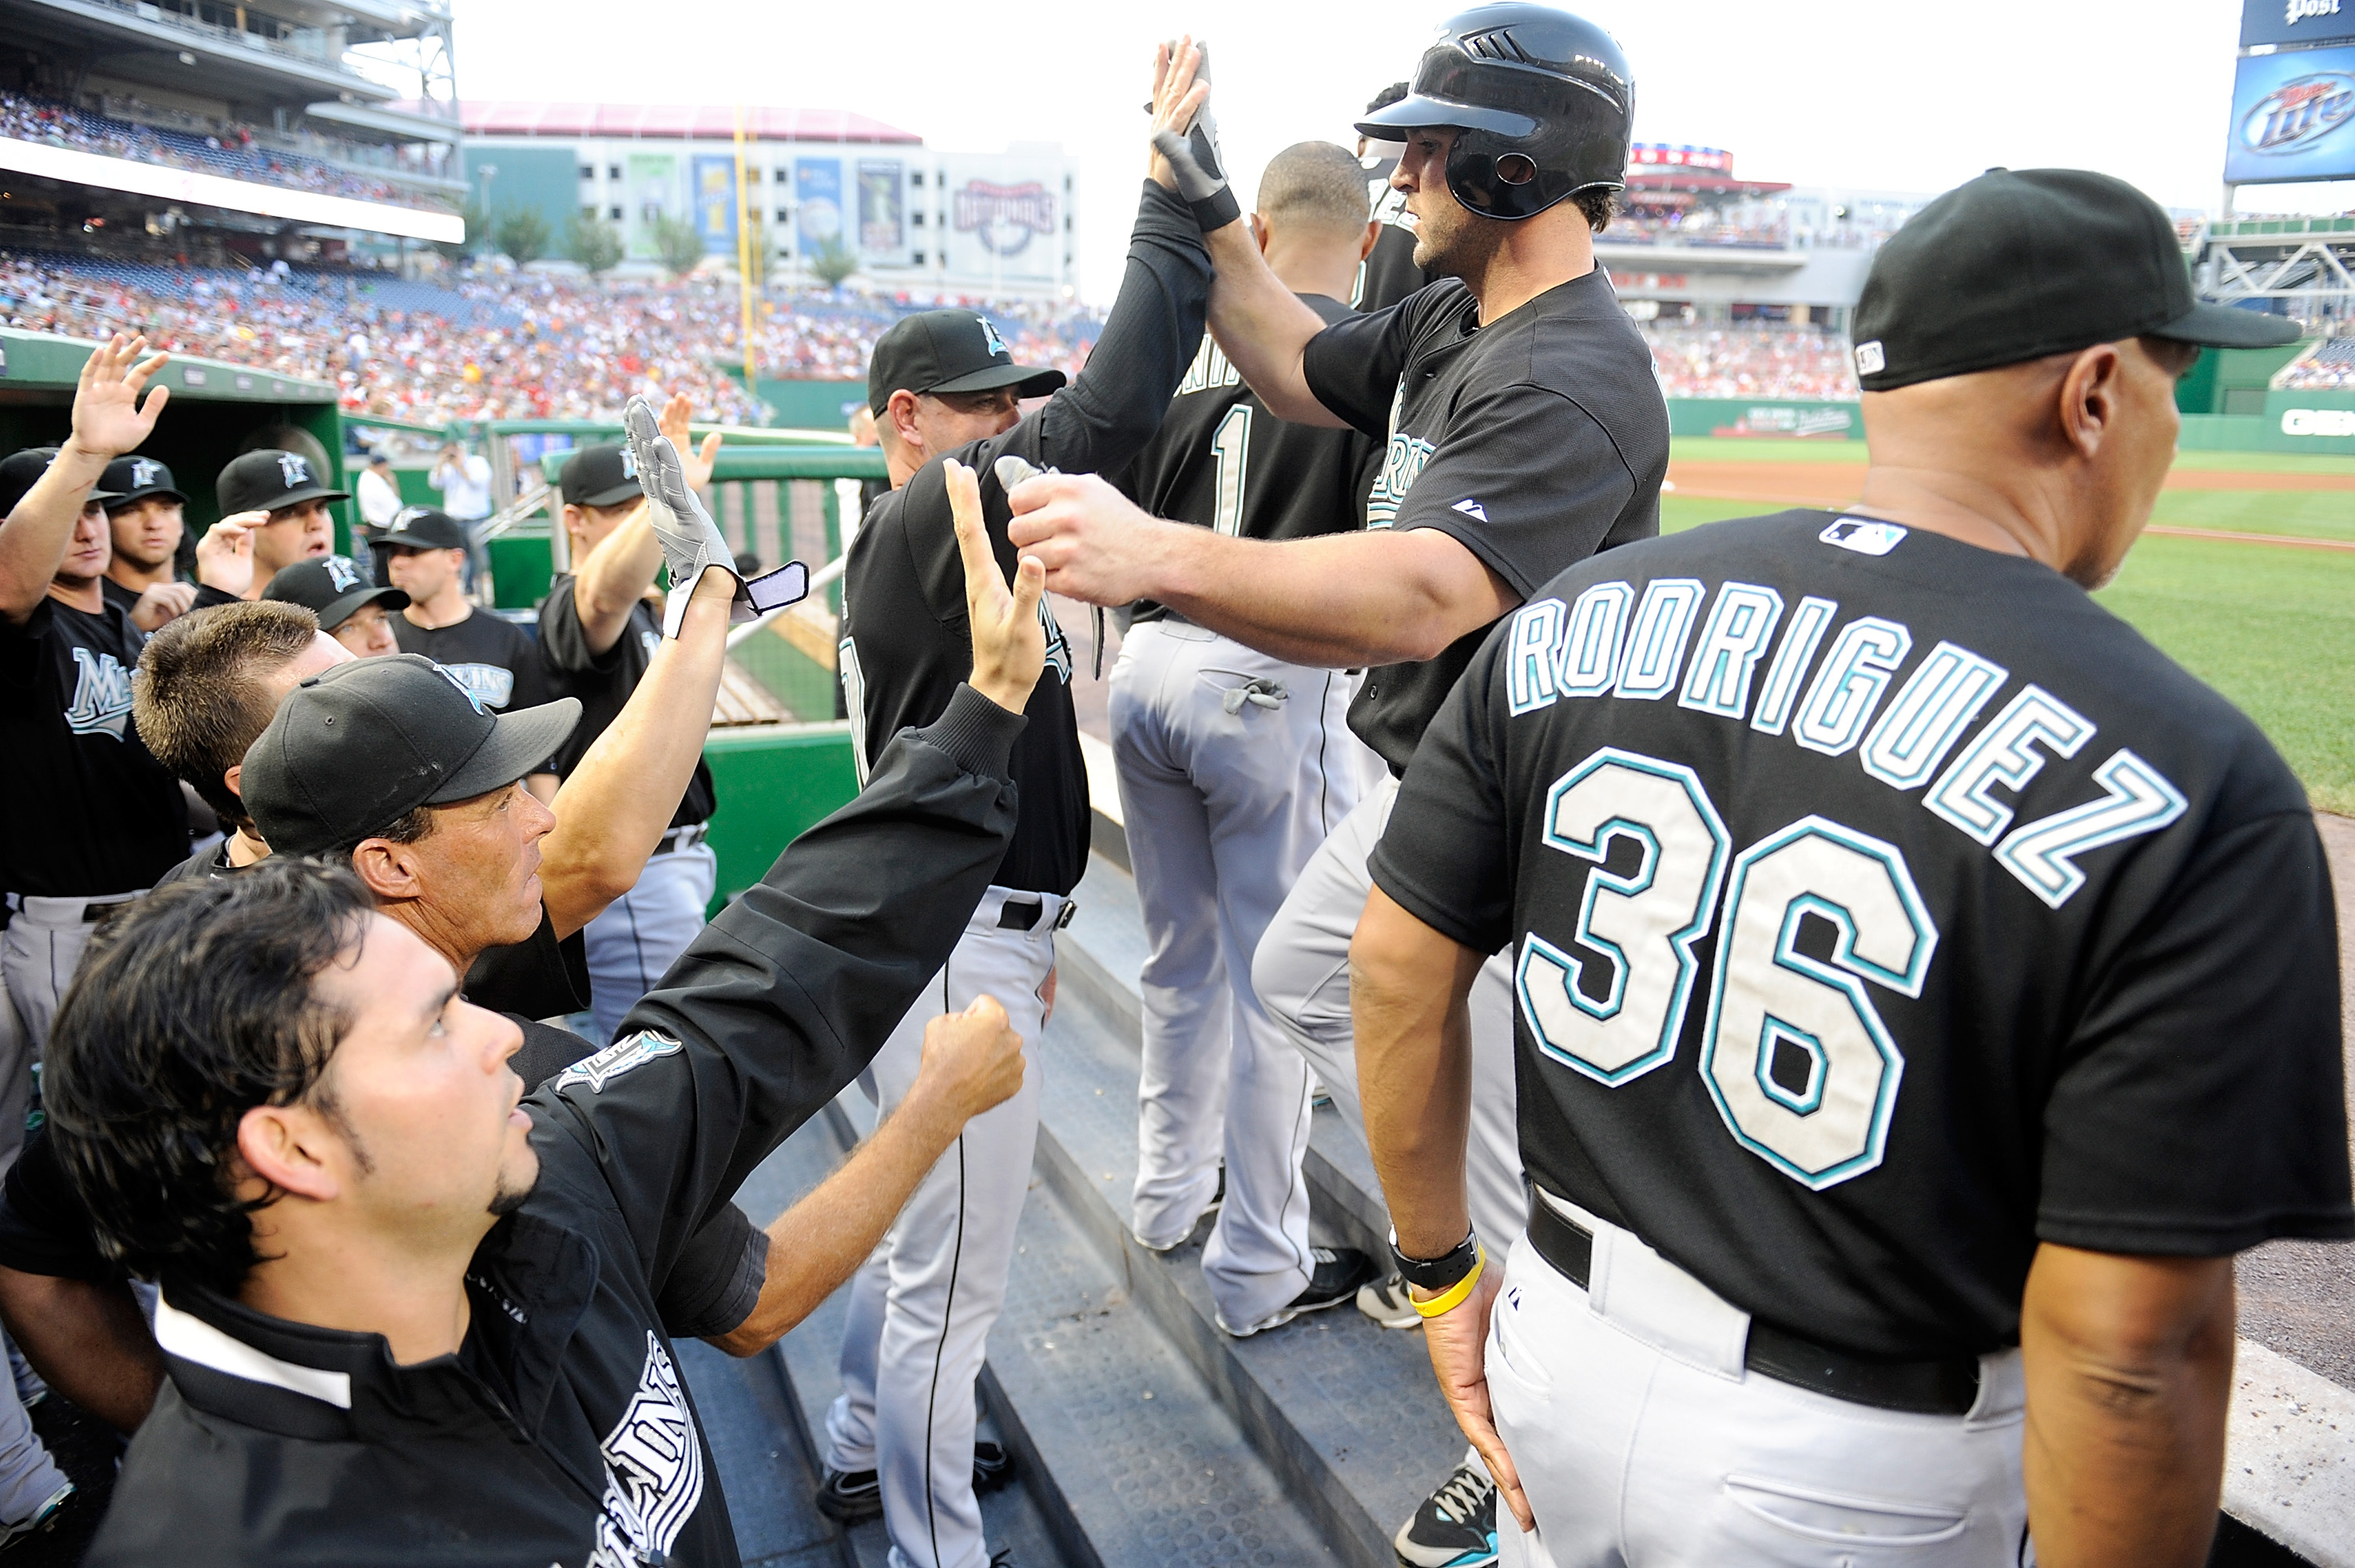 The Florida Marlins could very well be one of the big surpirse teams in 2011.